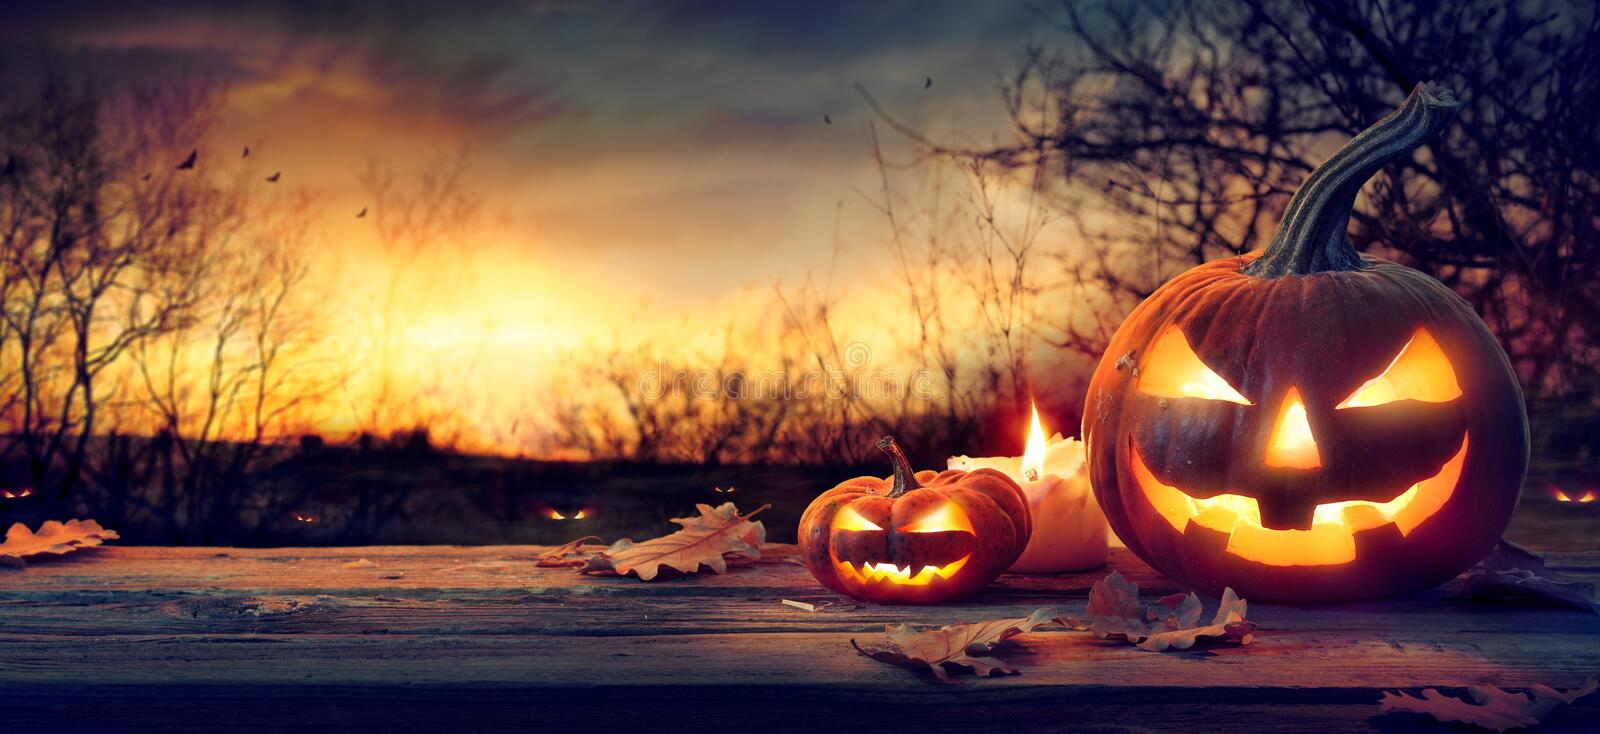 Jack O' Lanterns In Spooky Forest With Ghost Lights royalty free stock photo